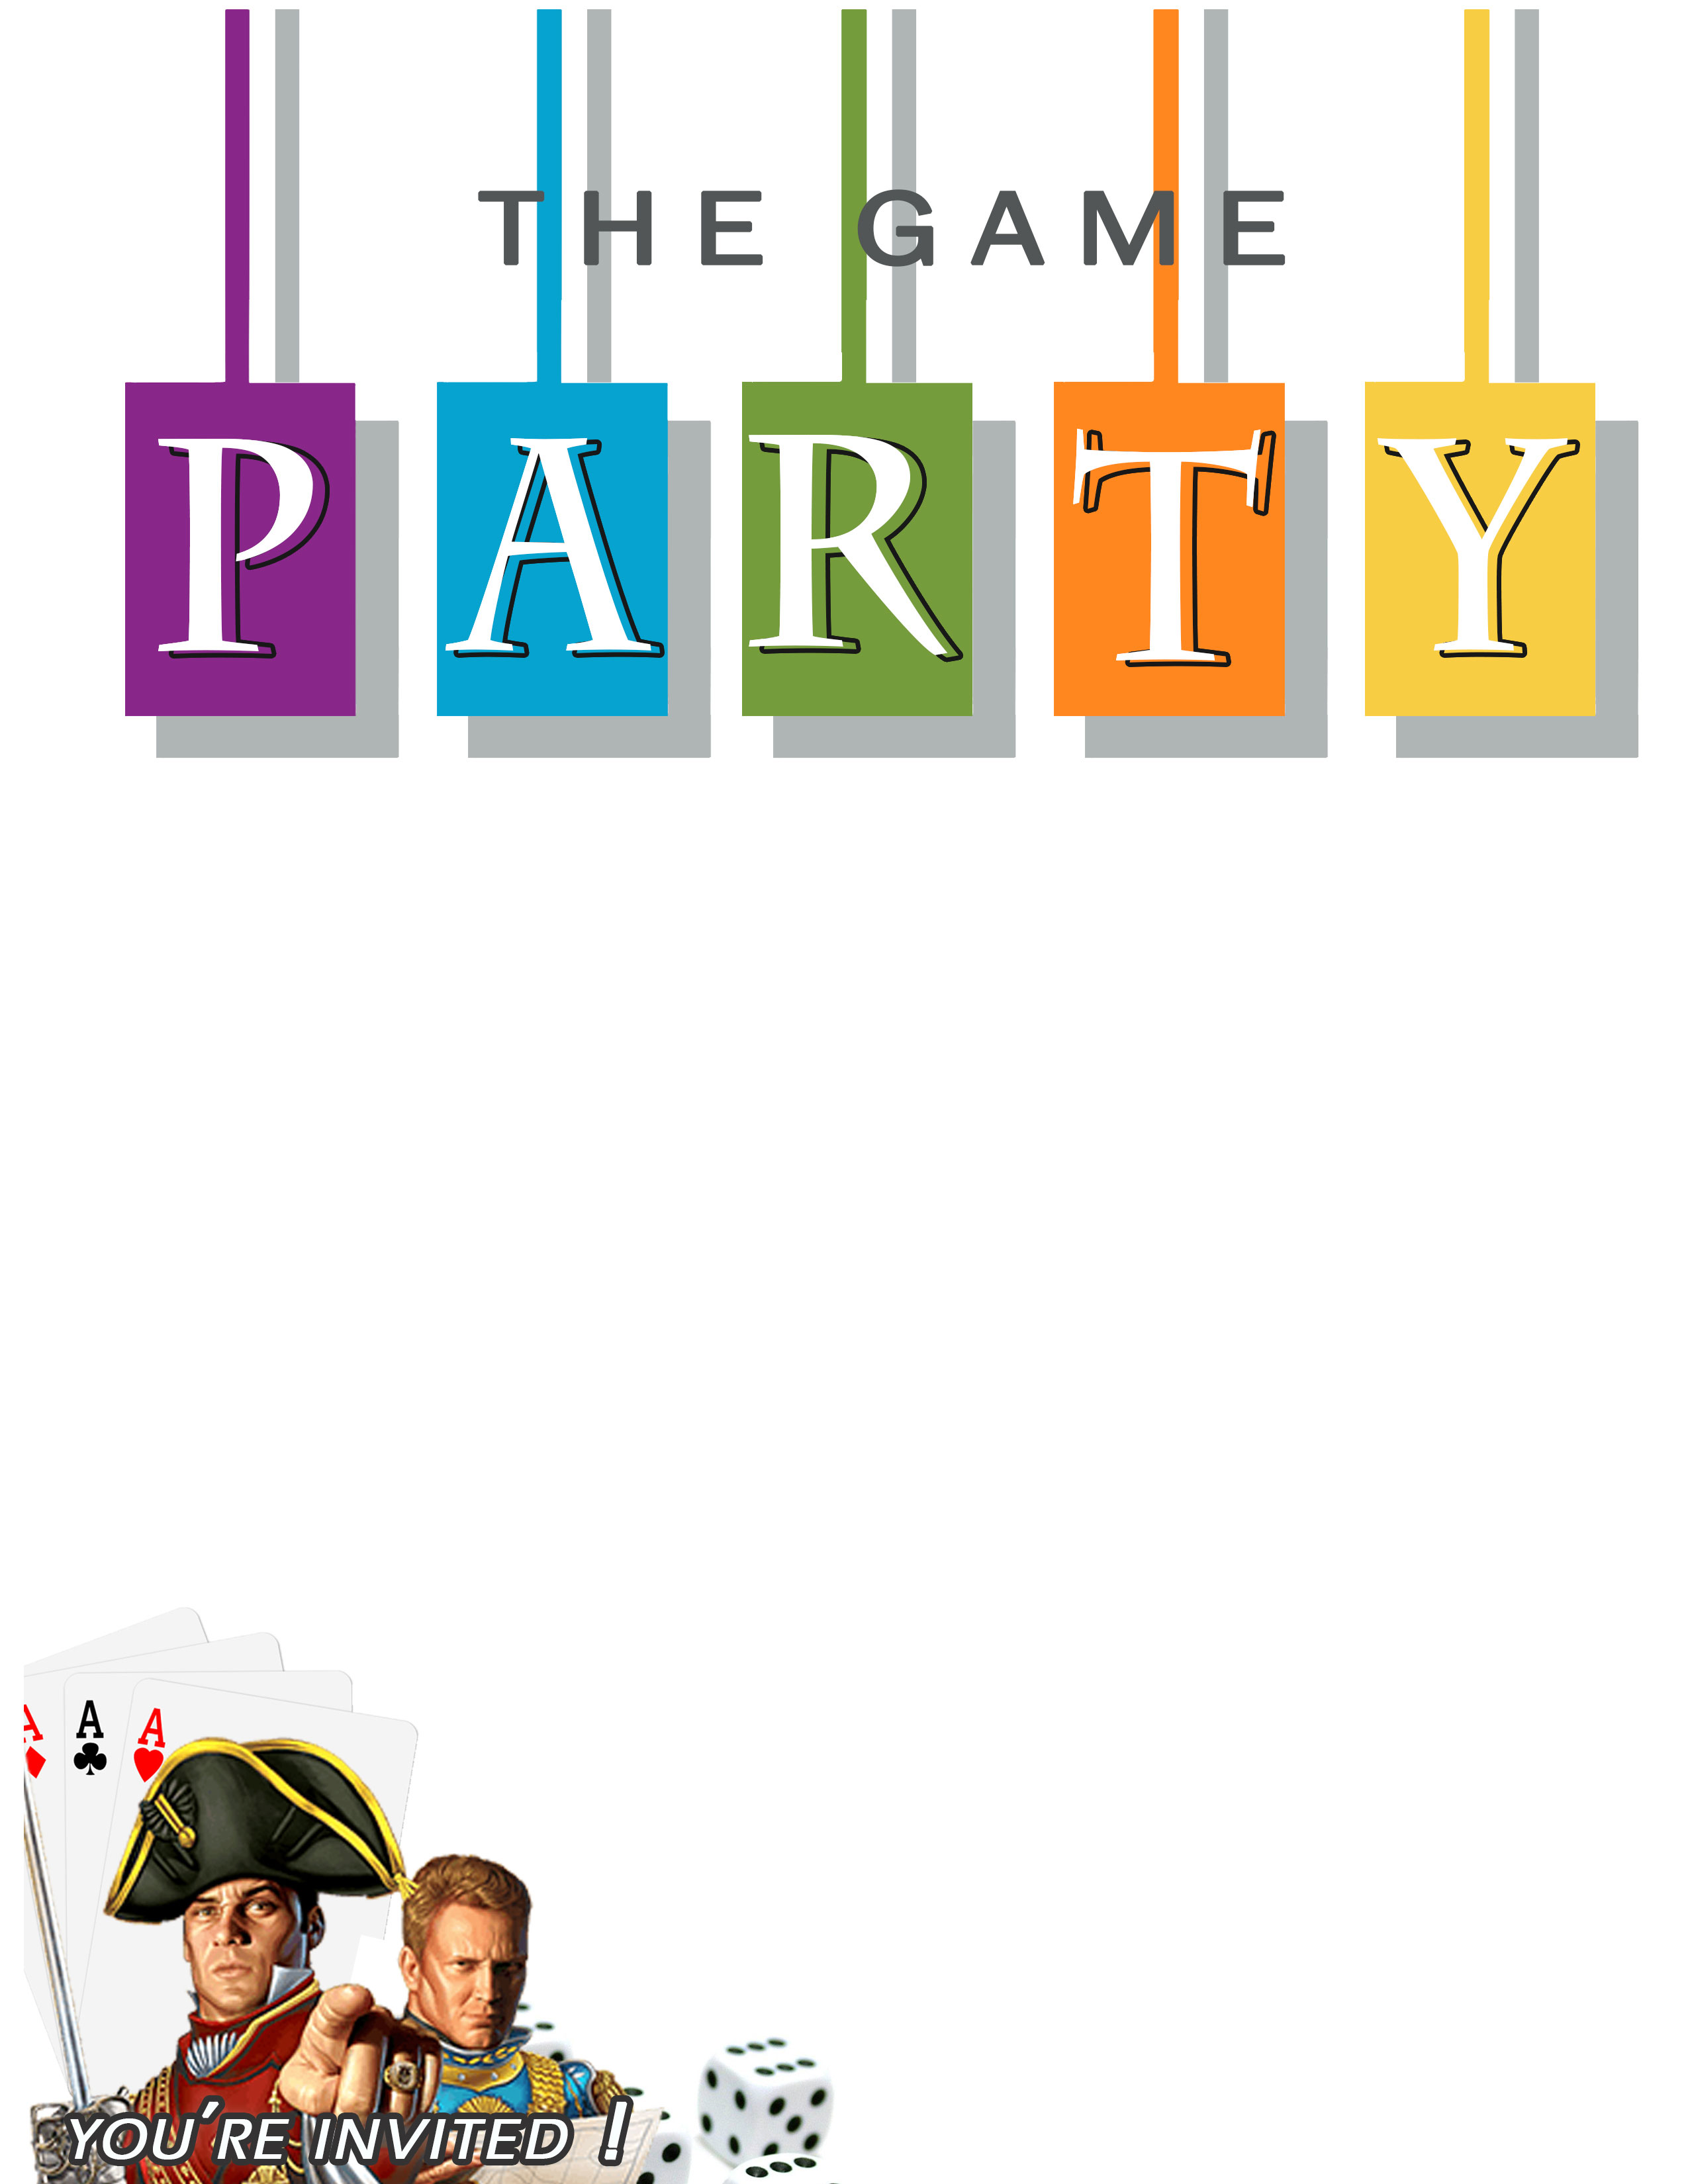 Free download printable game party invitation paint yourself a smile awesome free printable game party invite diy game night party ideas and free invitation download solutioingenieria Image collections